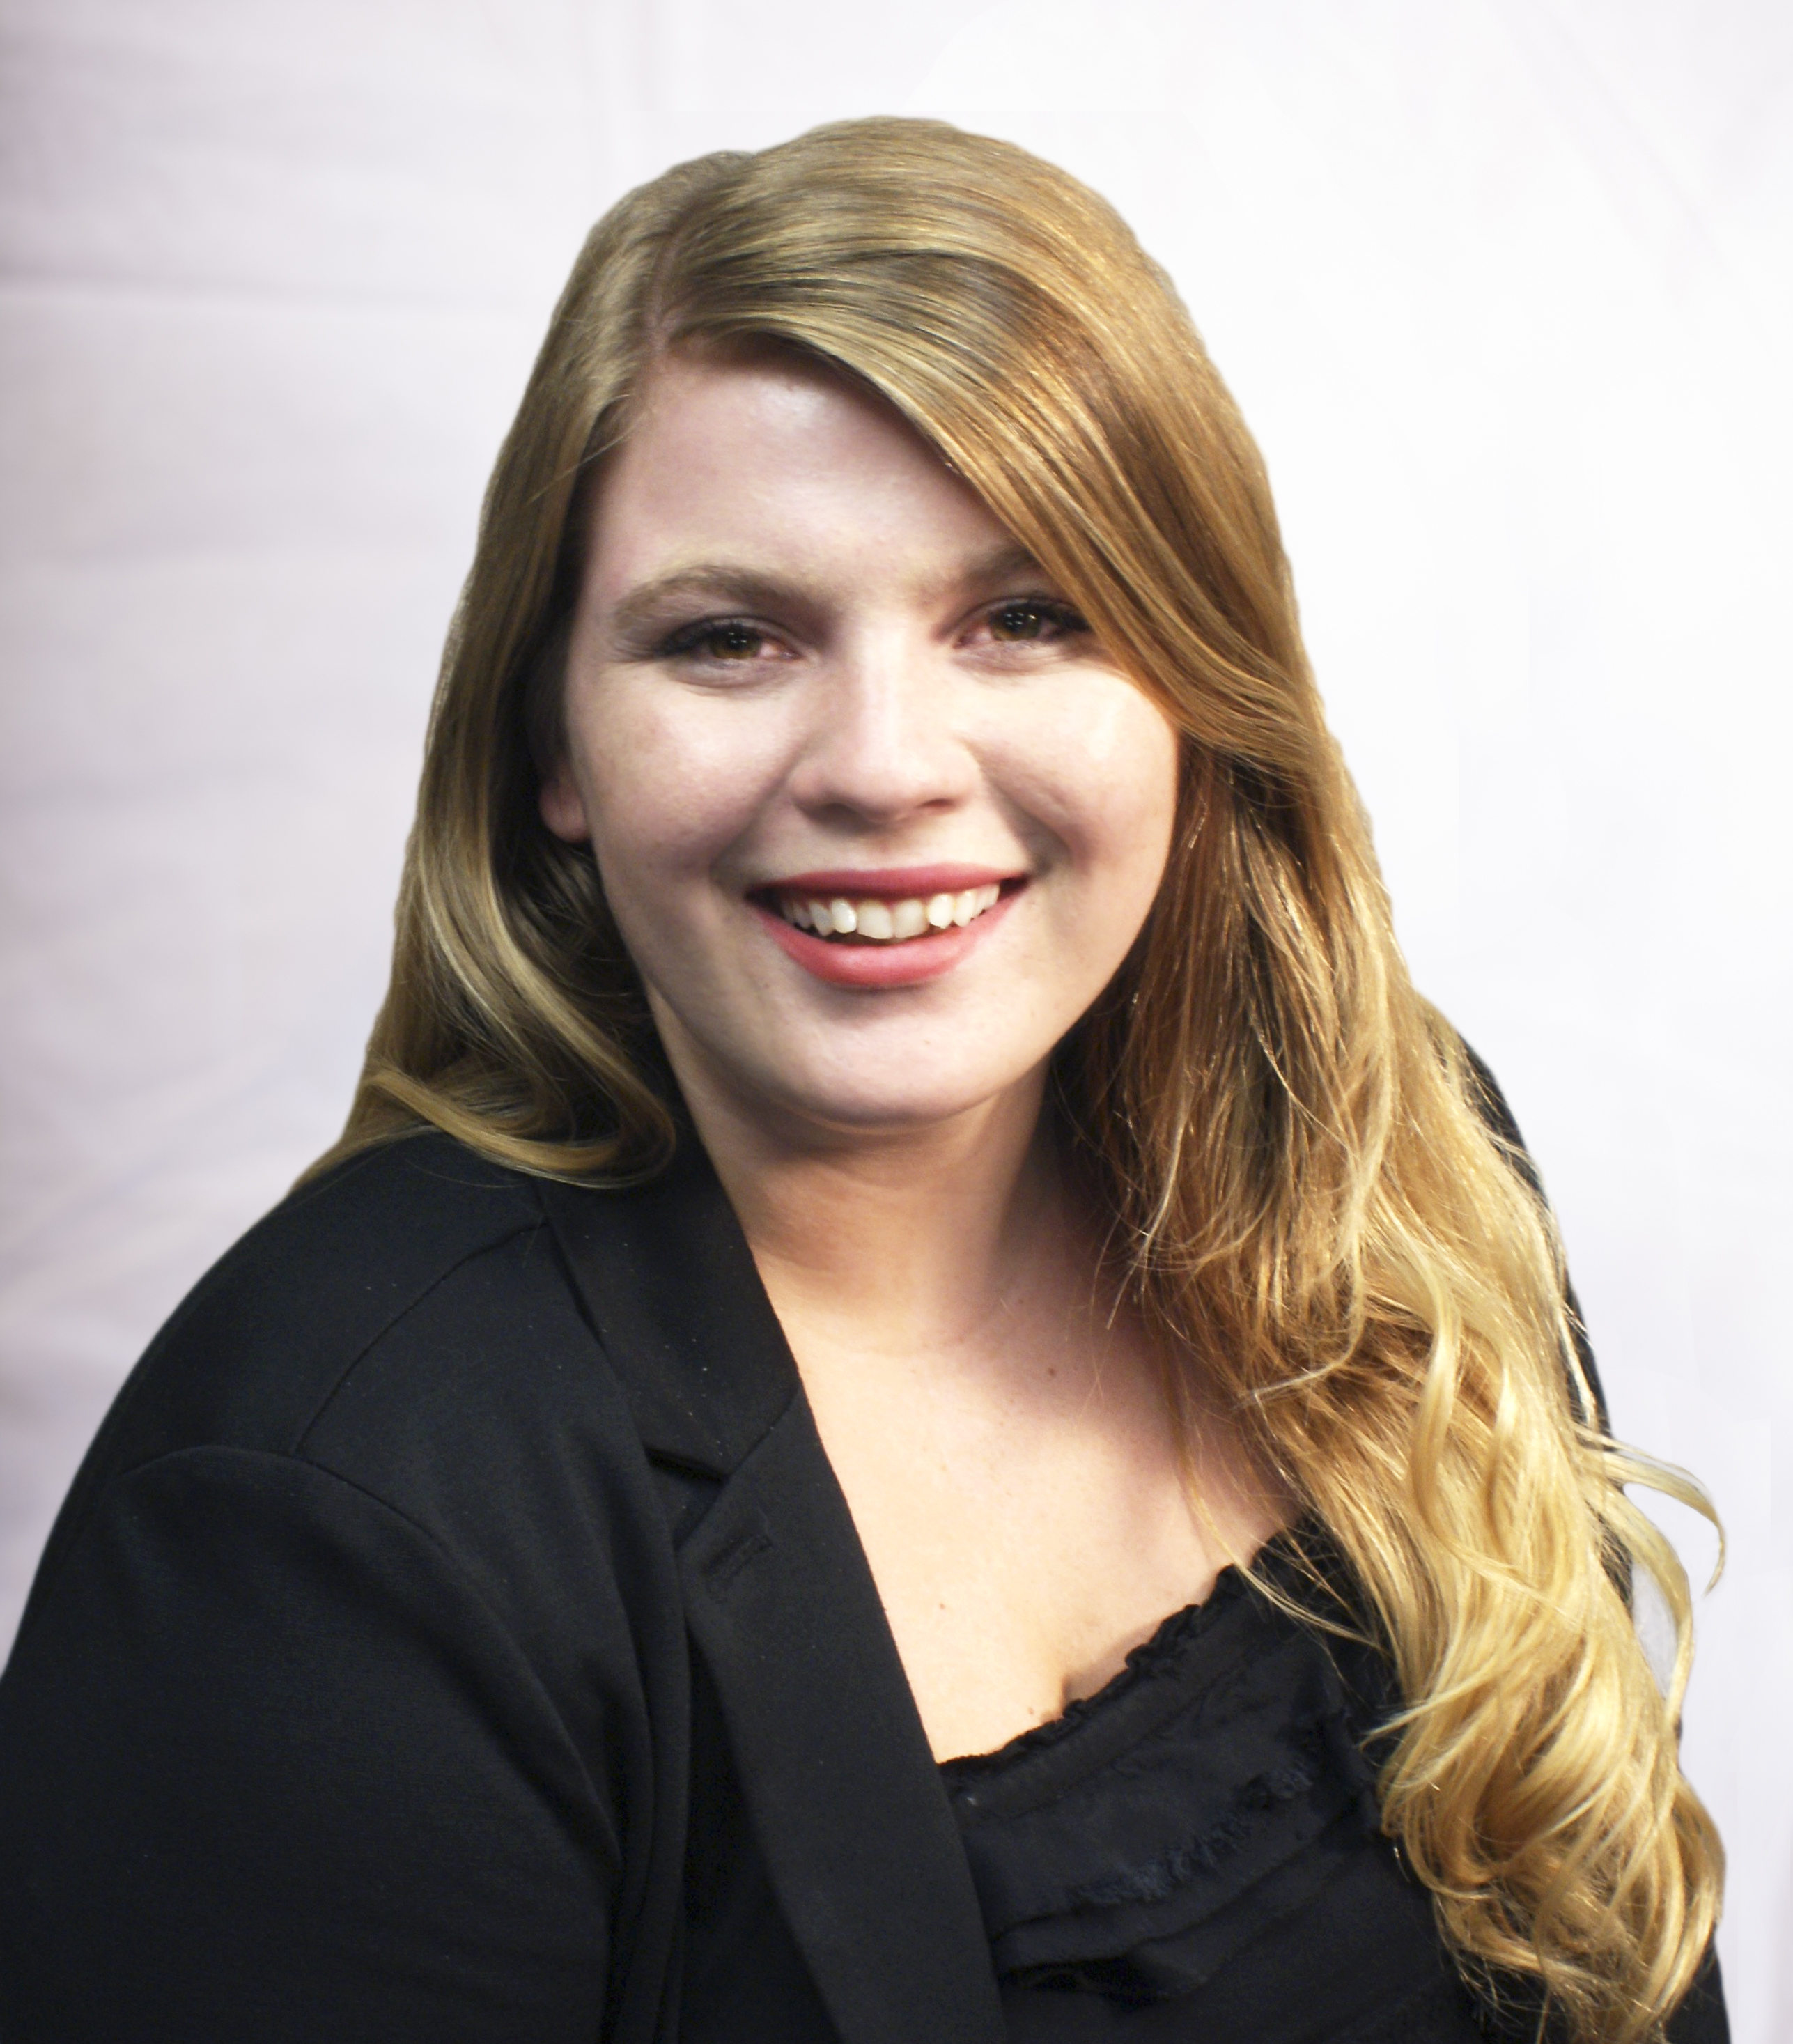 Meet the Team: Jasmine – Marketing & Communications Coordinator